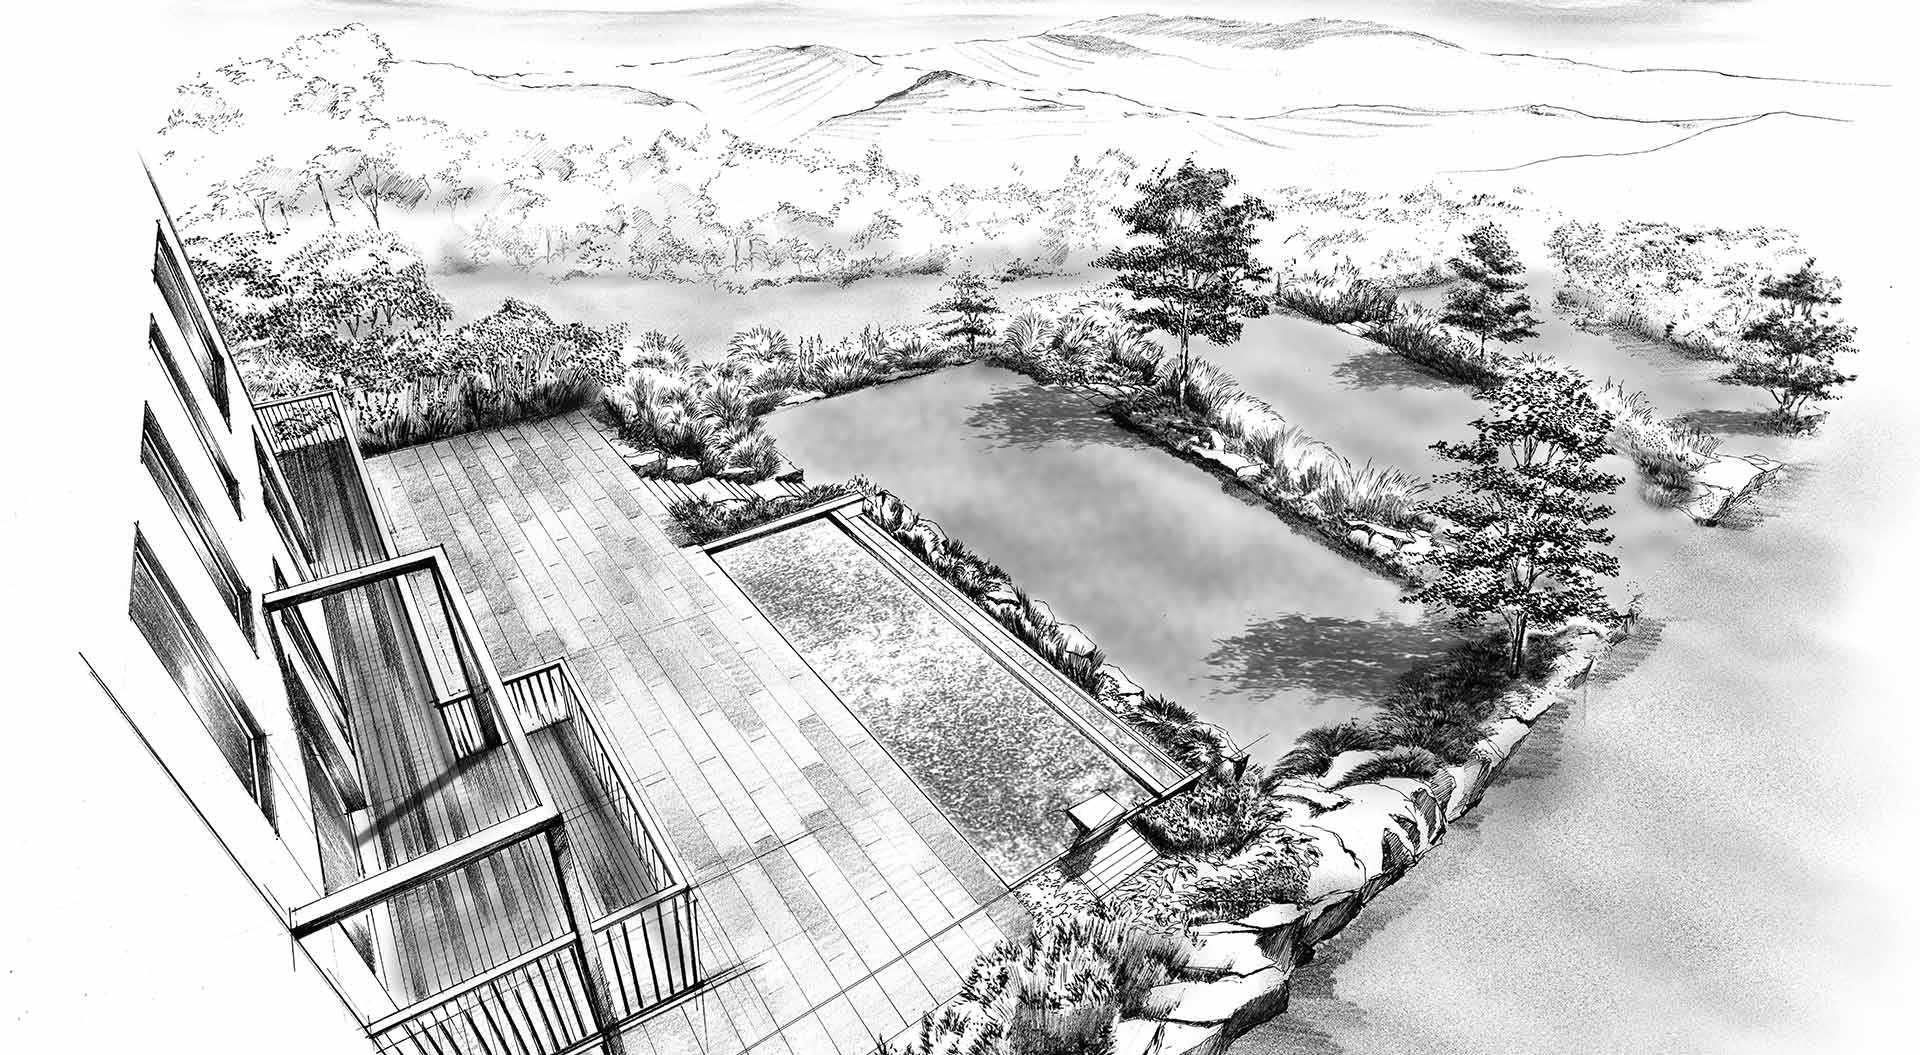 Hand-drawn sketch of a private garden